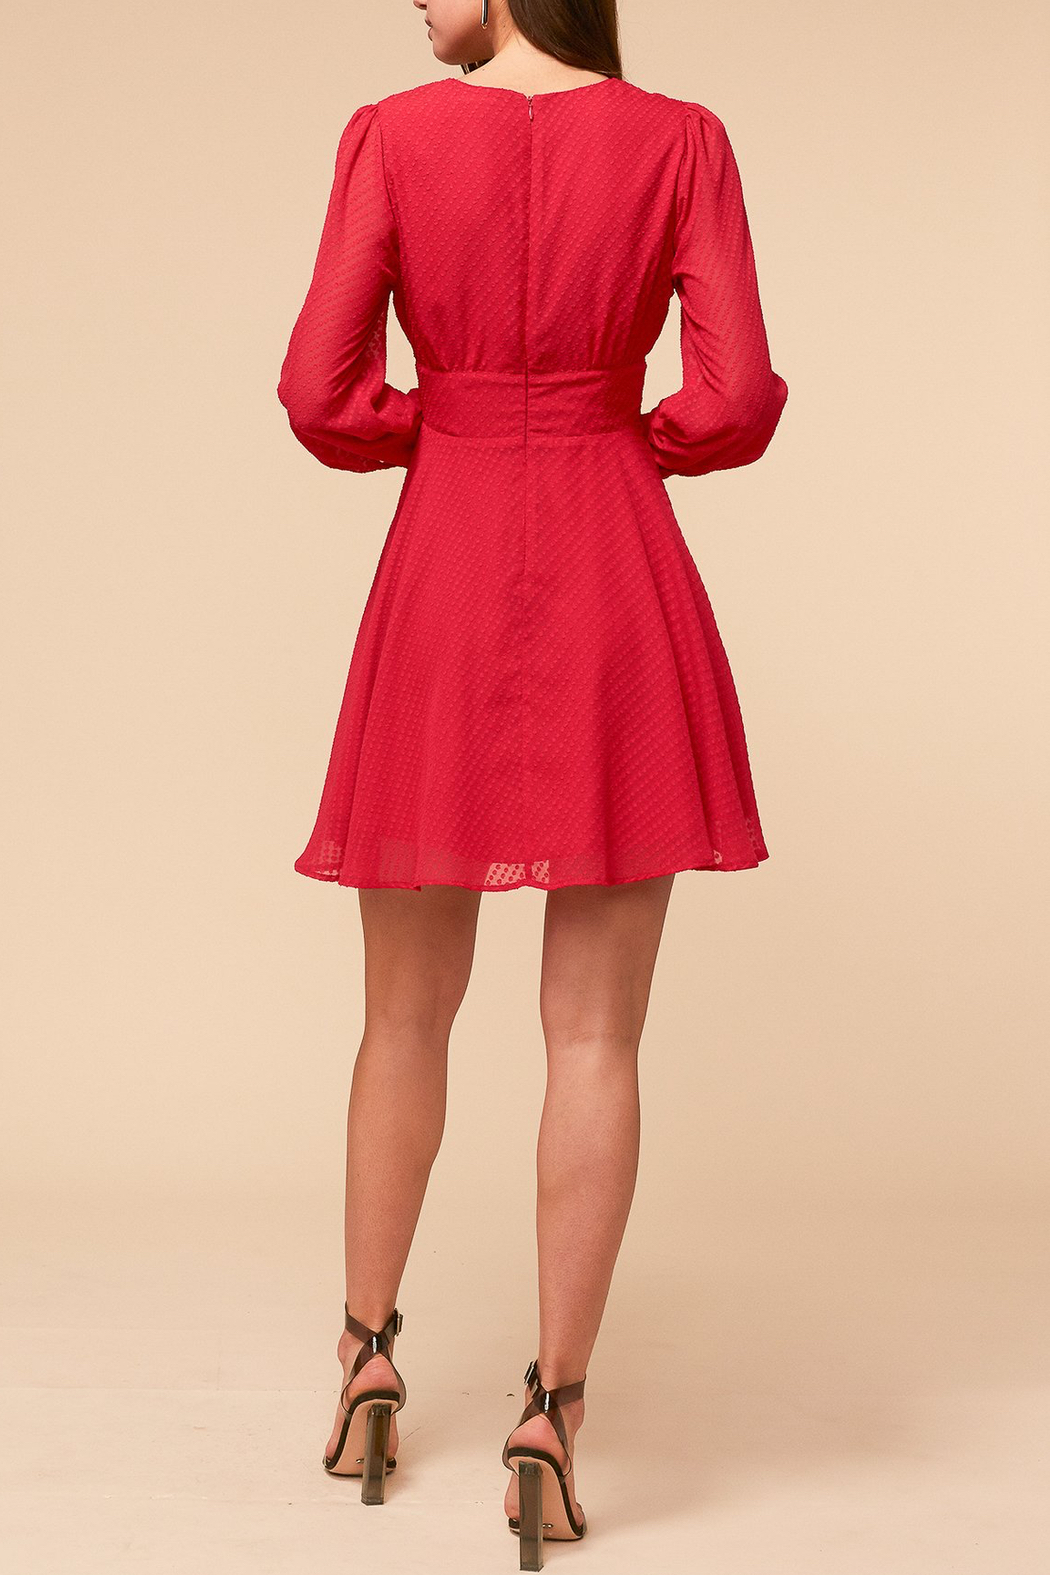 Adelyn Rae Lina Fit and Flare Dress - Front Full Image